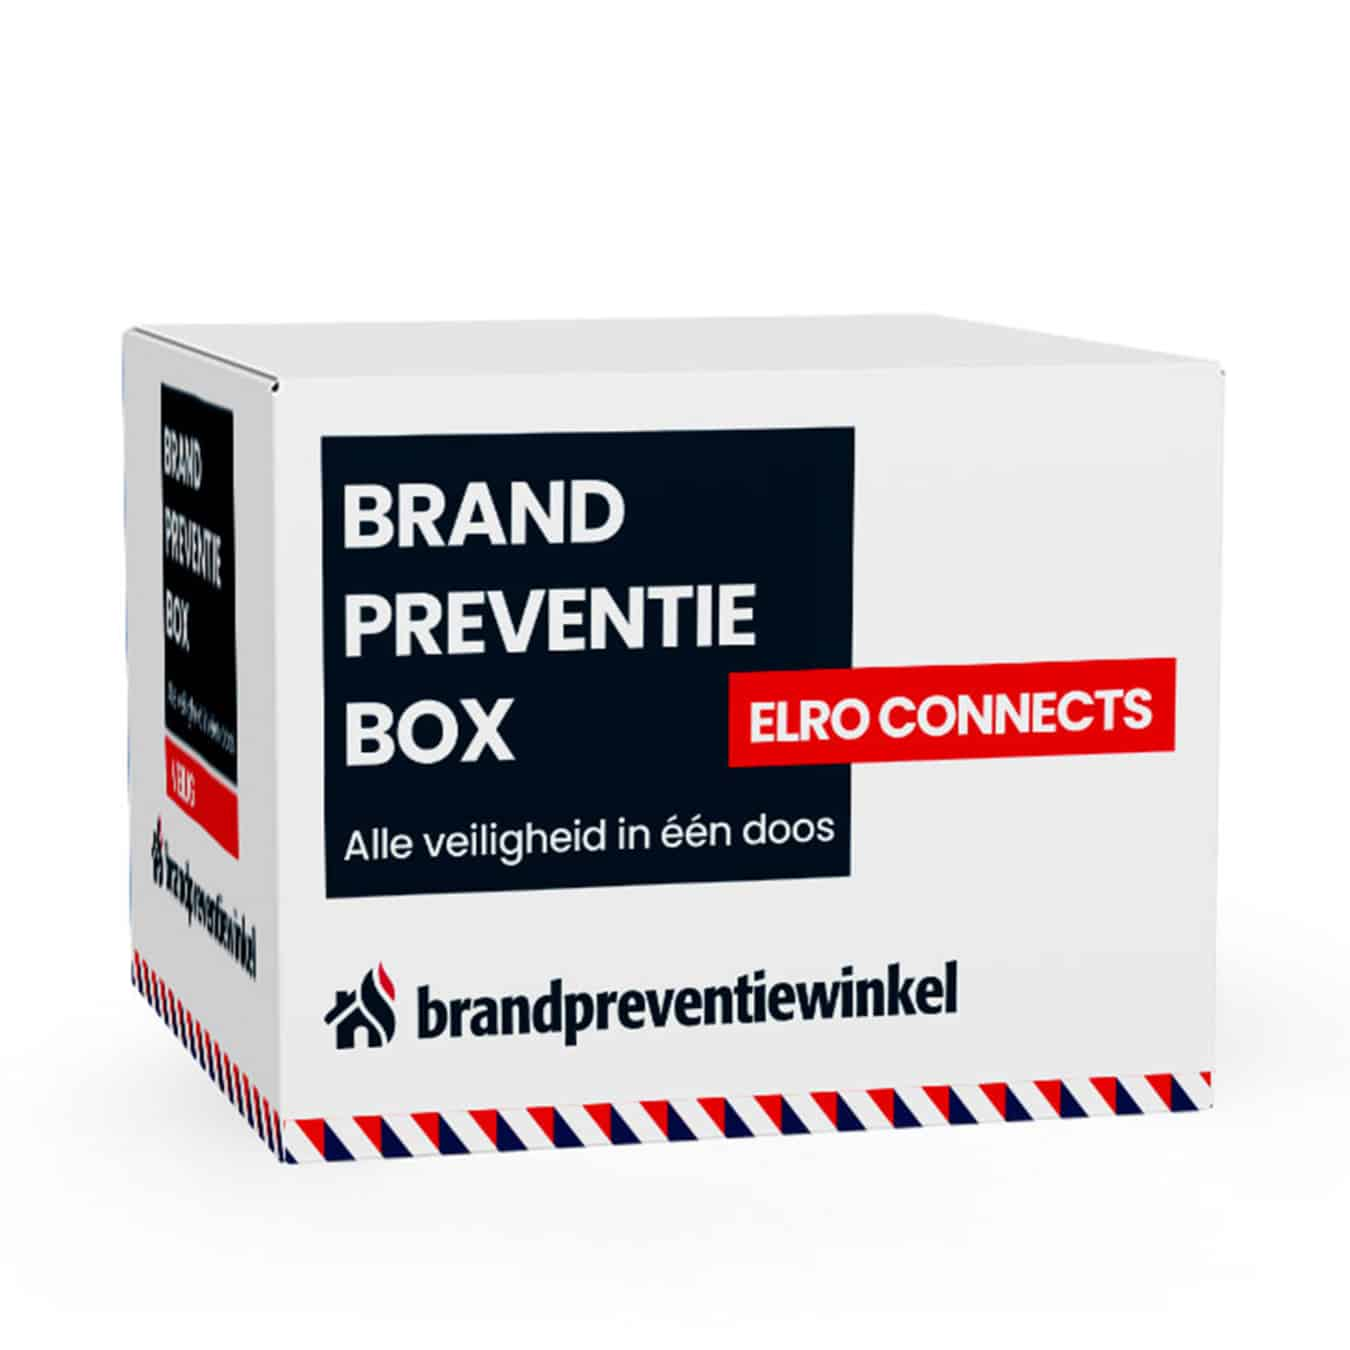 Koop Brandpreventiebox Elro Connects